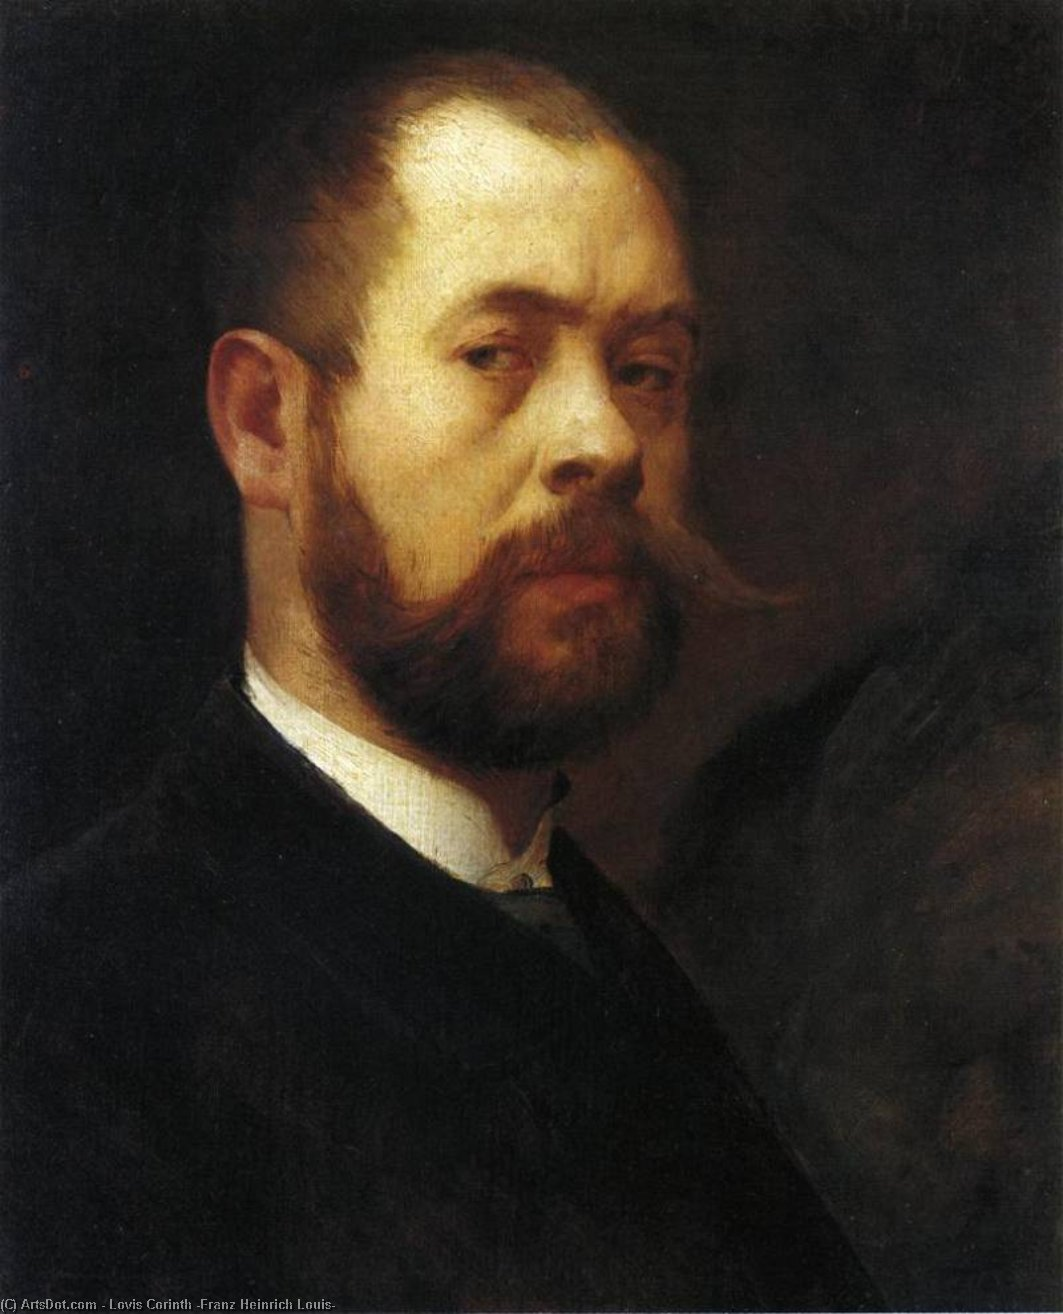 Self Portrait, Oil On Canvas by Lovis Corinth (Franz Heinrich Louis) (1858-1925, Netherlands)